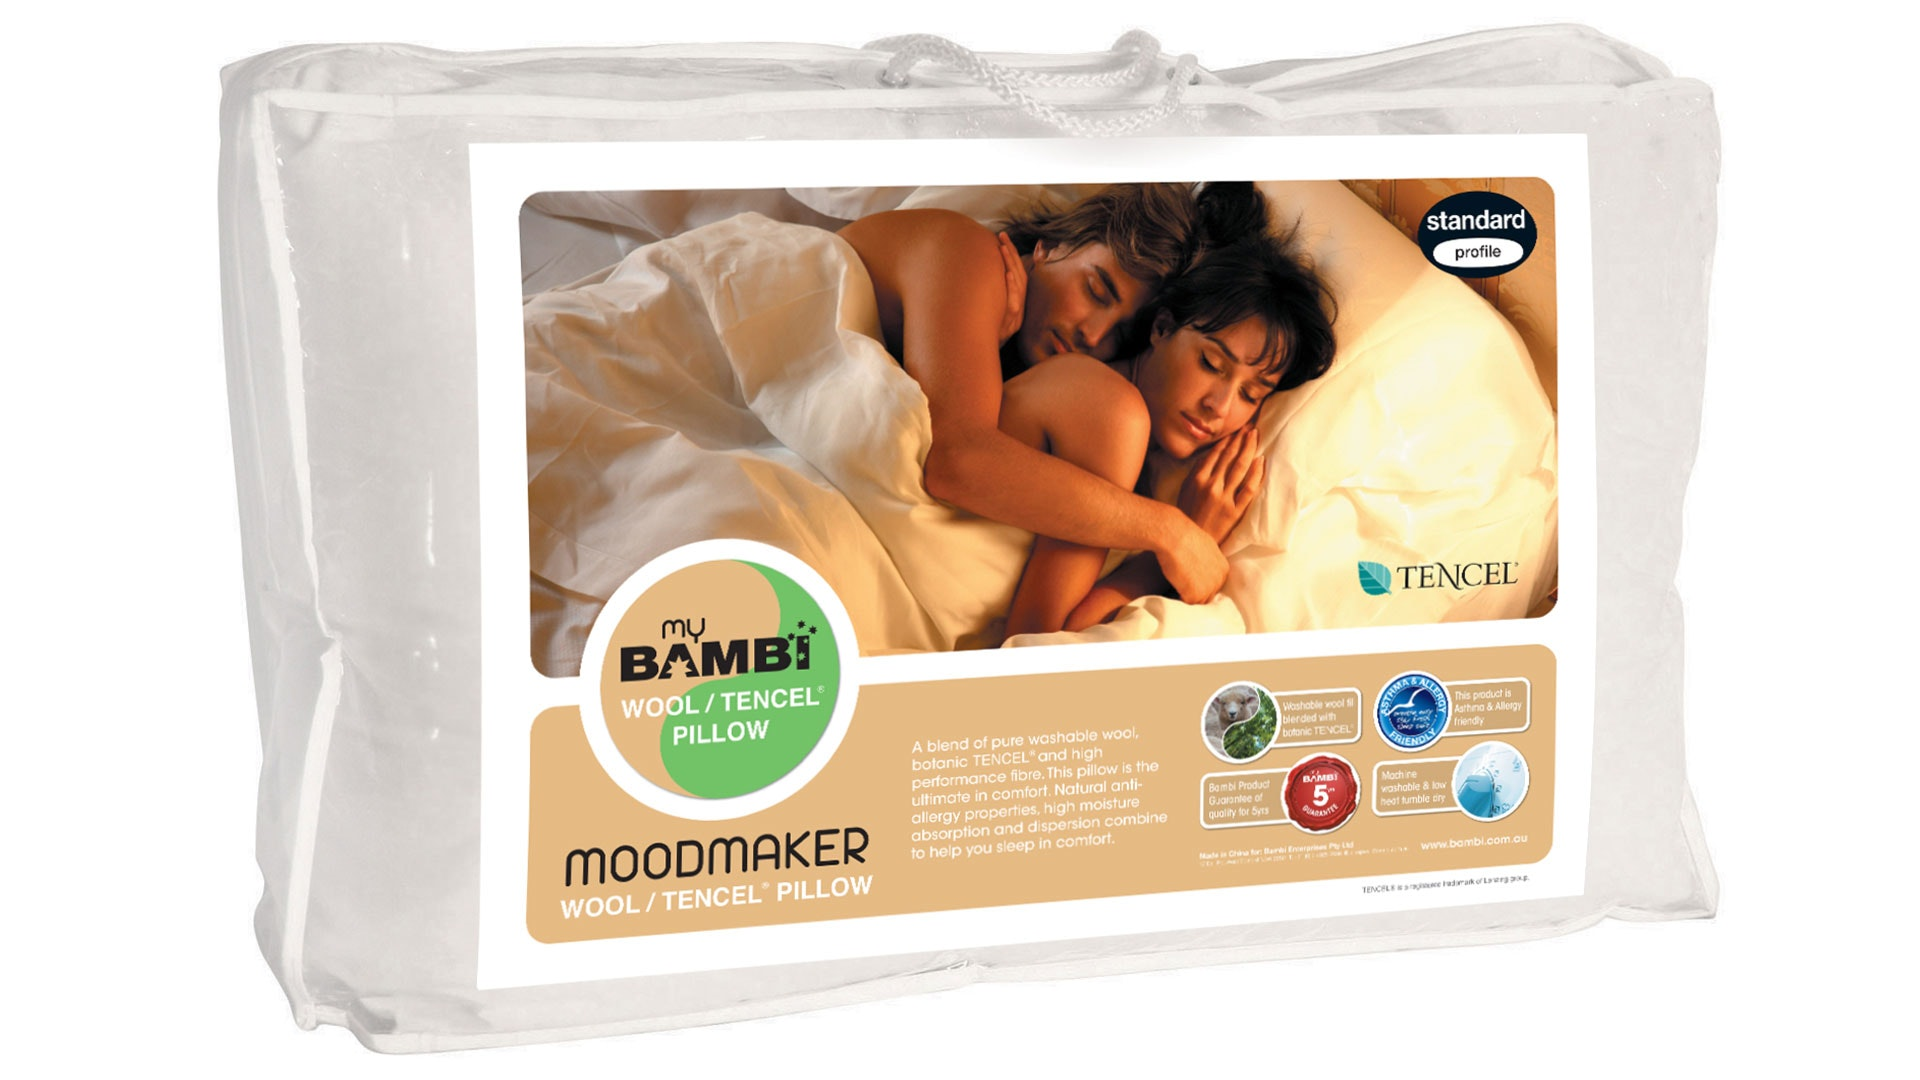 Moodmaker Wool Tencel Blend Pillow by Bambi